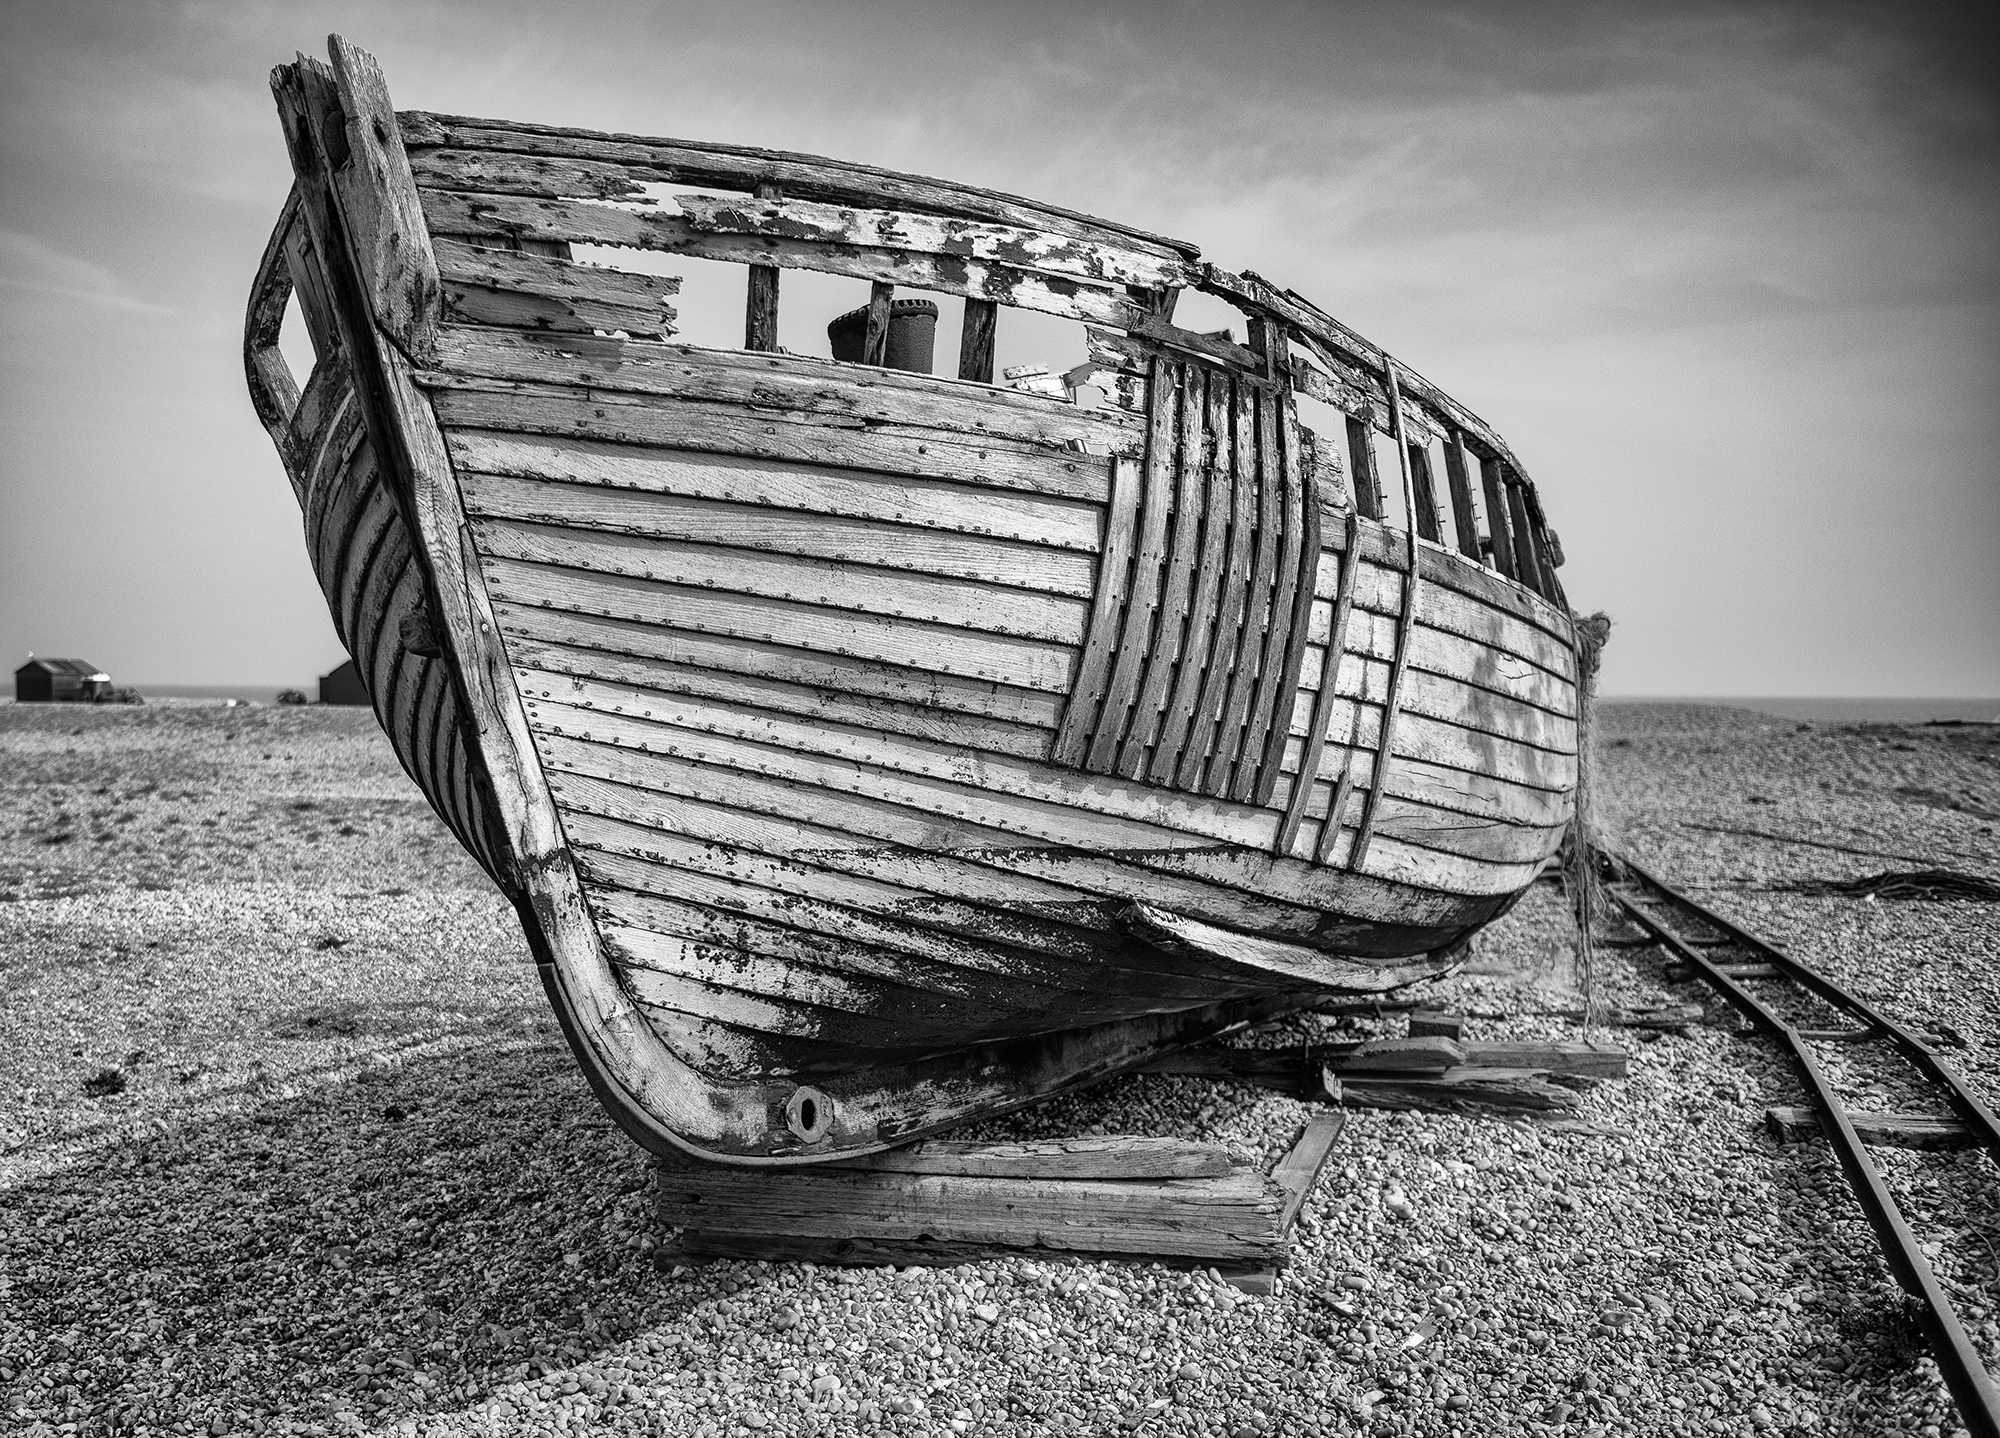 DUNGENESS HIGH AND DRY